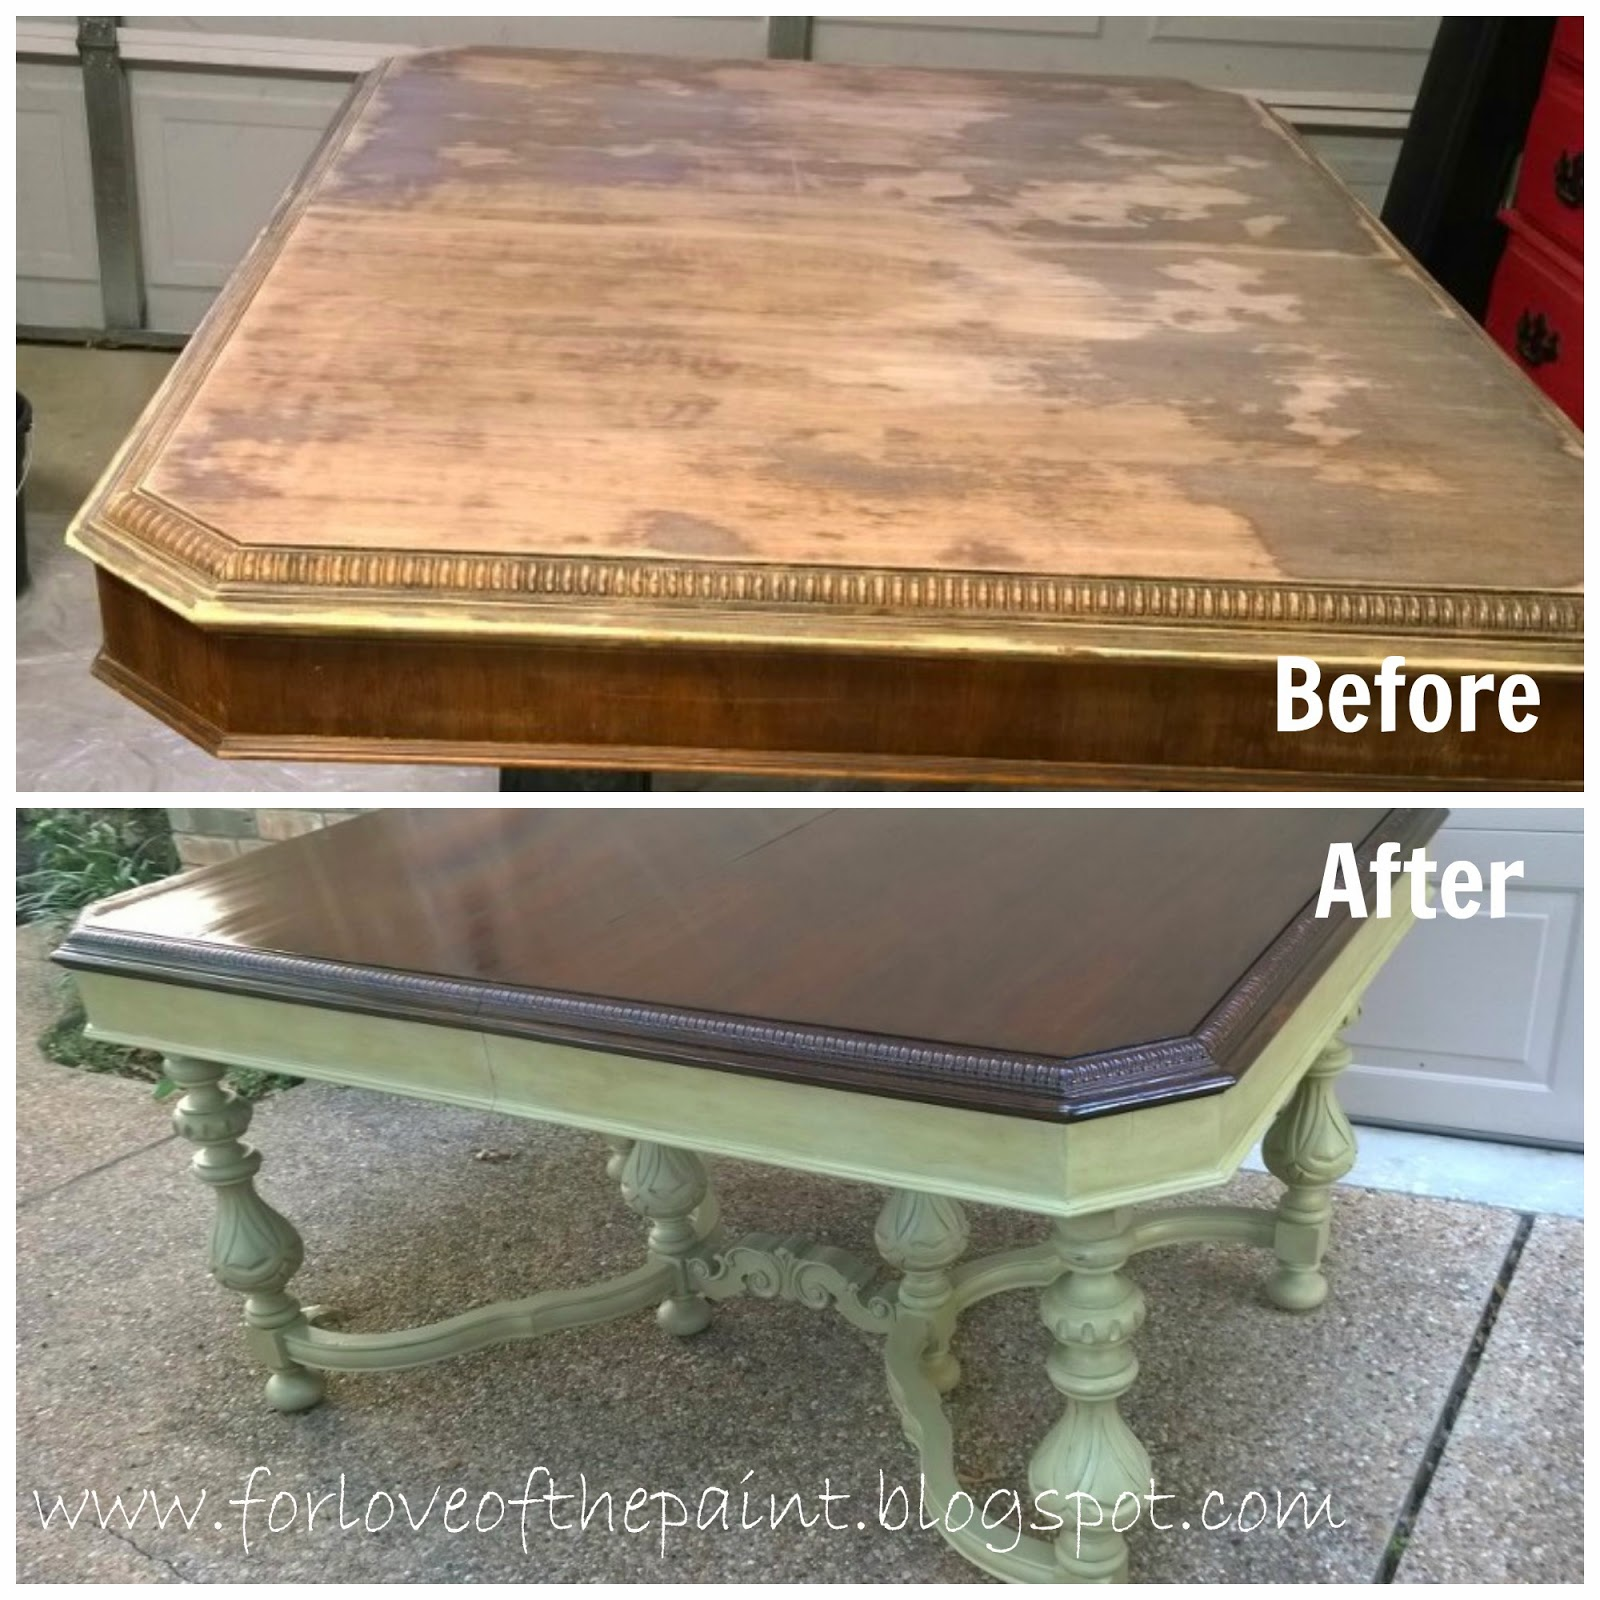 35 Best Images About Refinished Oak Tables On Pinterest: For Love Of The Paint: Before And After : Antique Dining Table